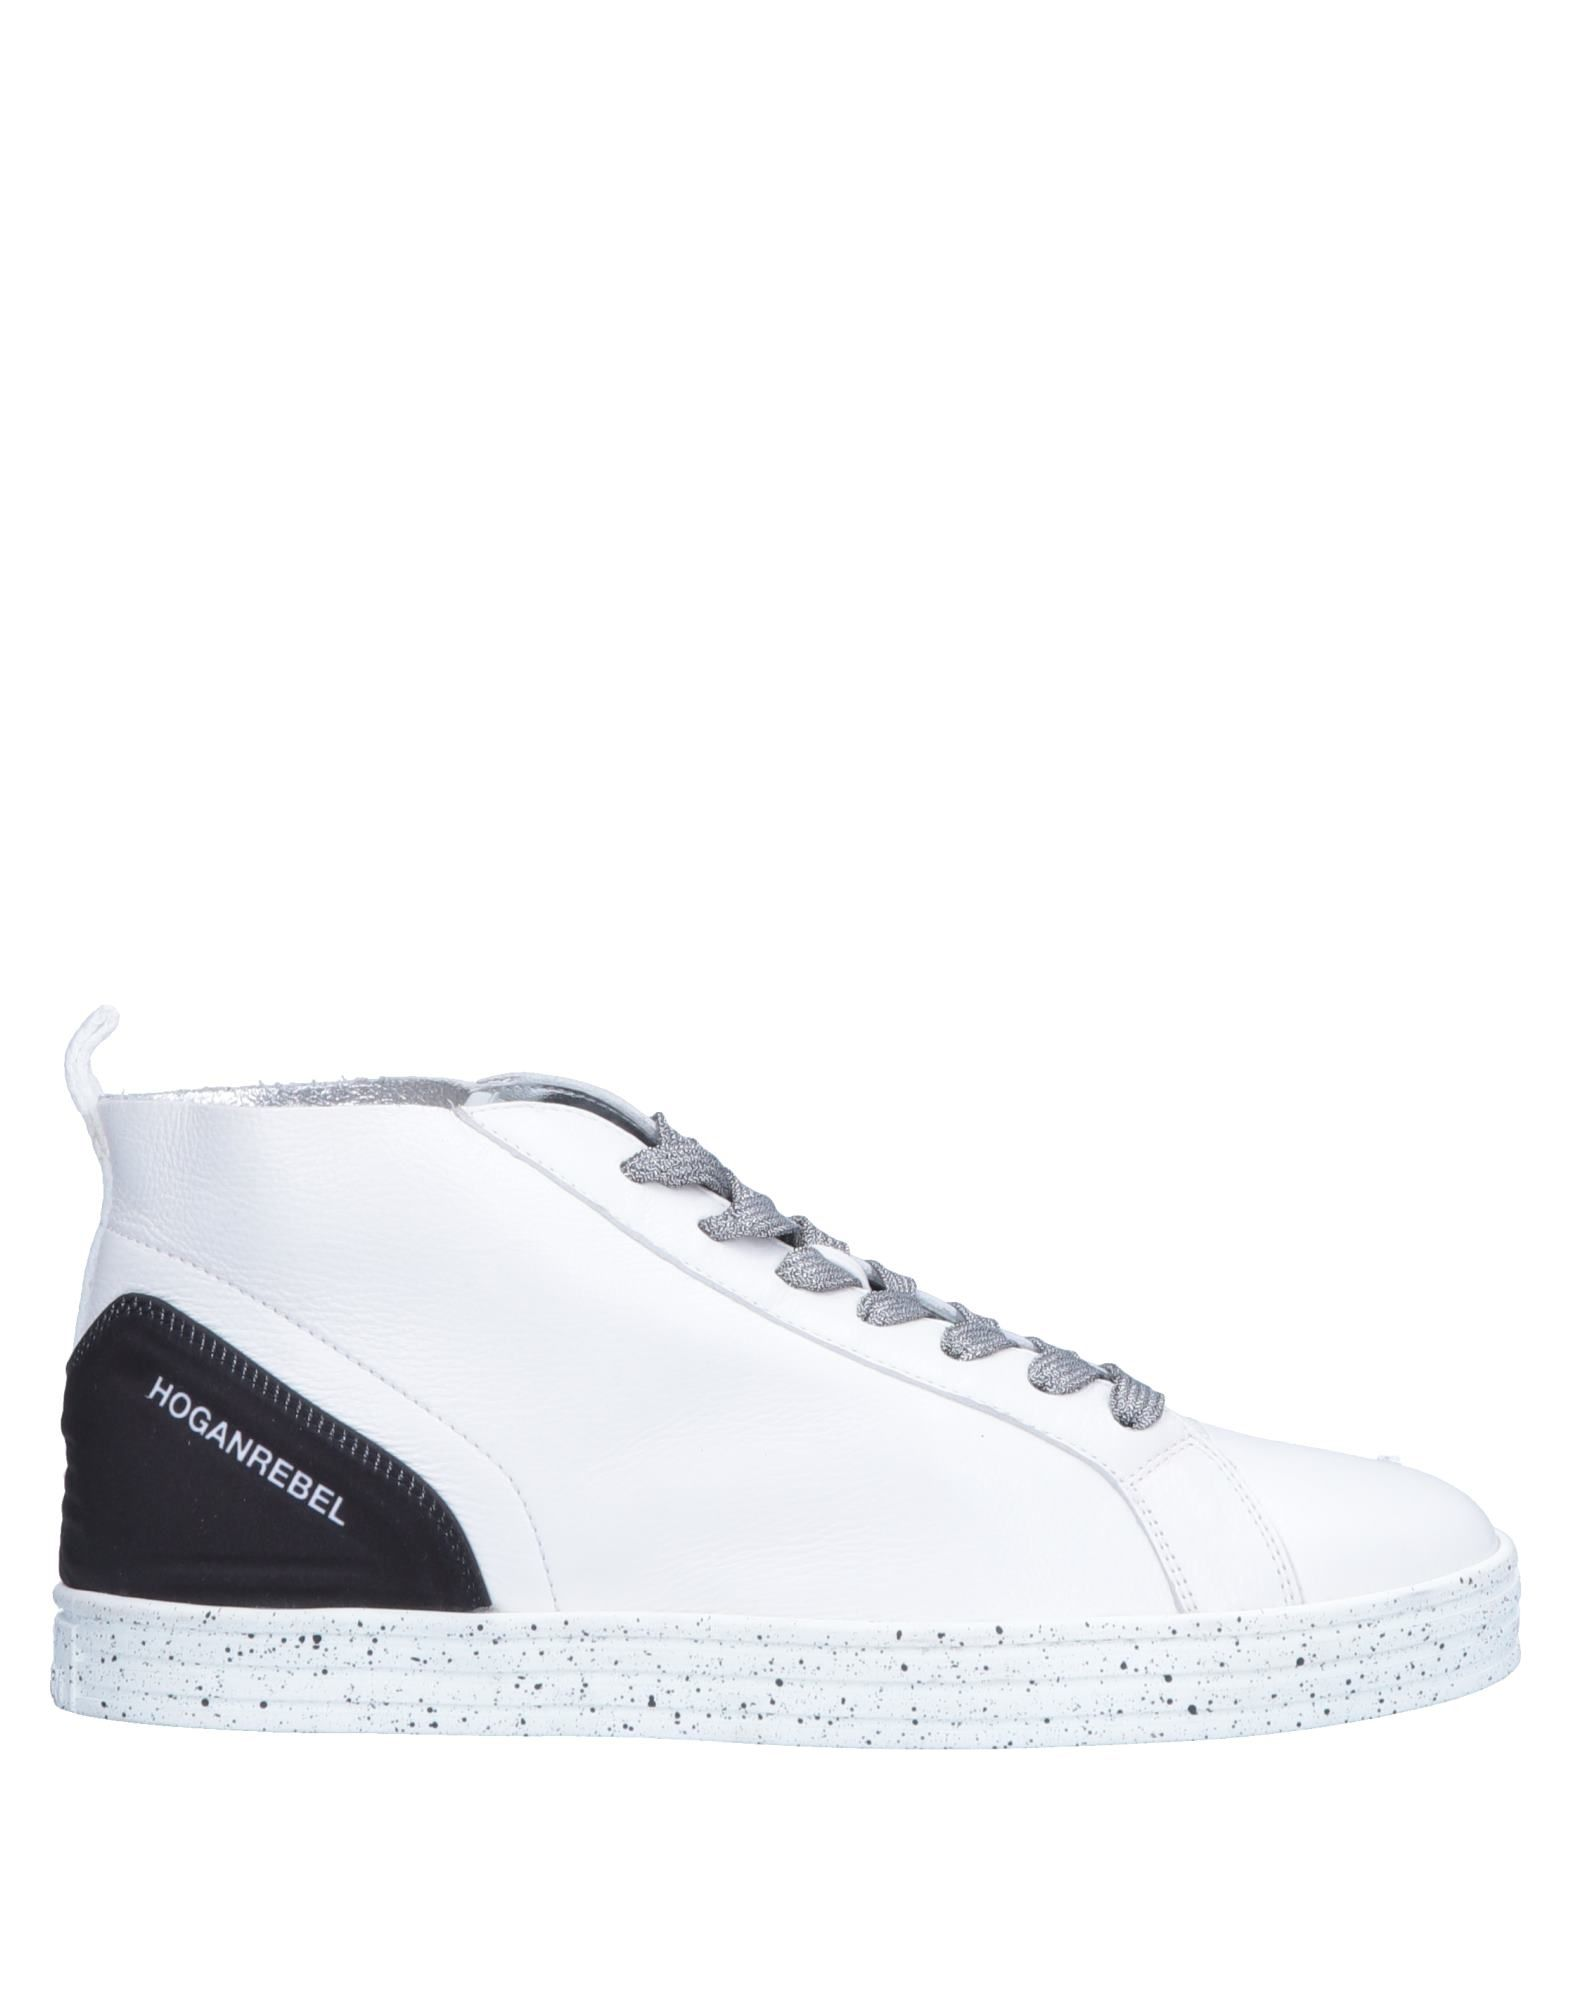 ccc677f264c9 Hogan Rebel Donna - 11564688VK Sneakers nryvvd2237-HOGAN REBEL - www ...